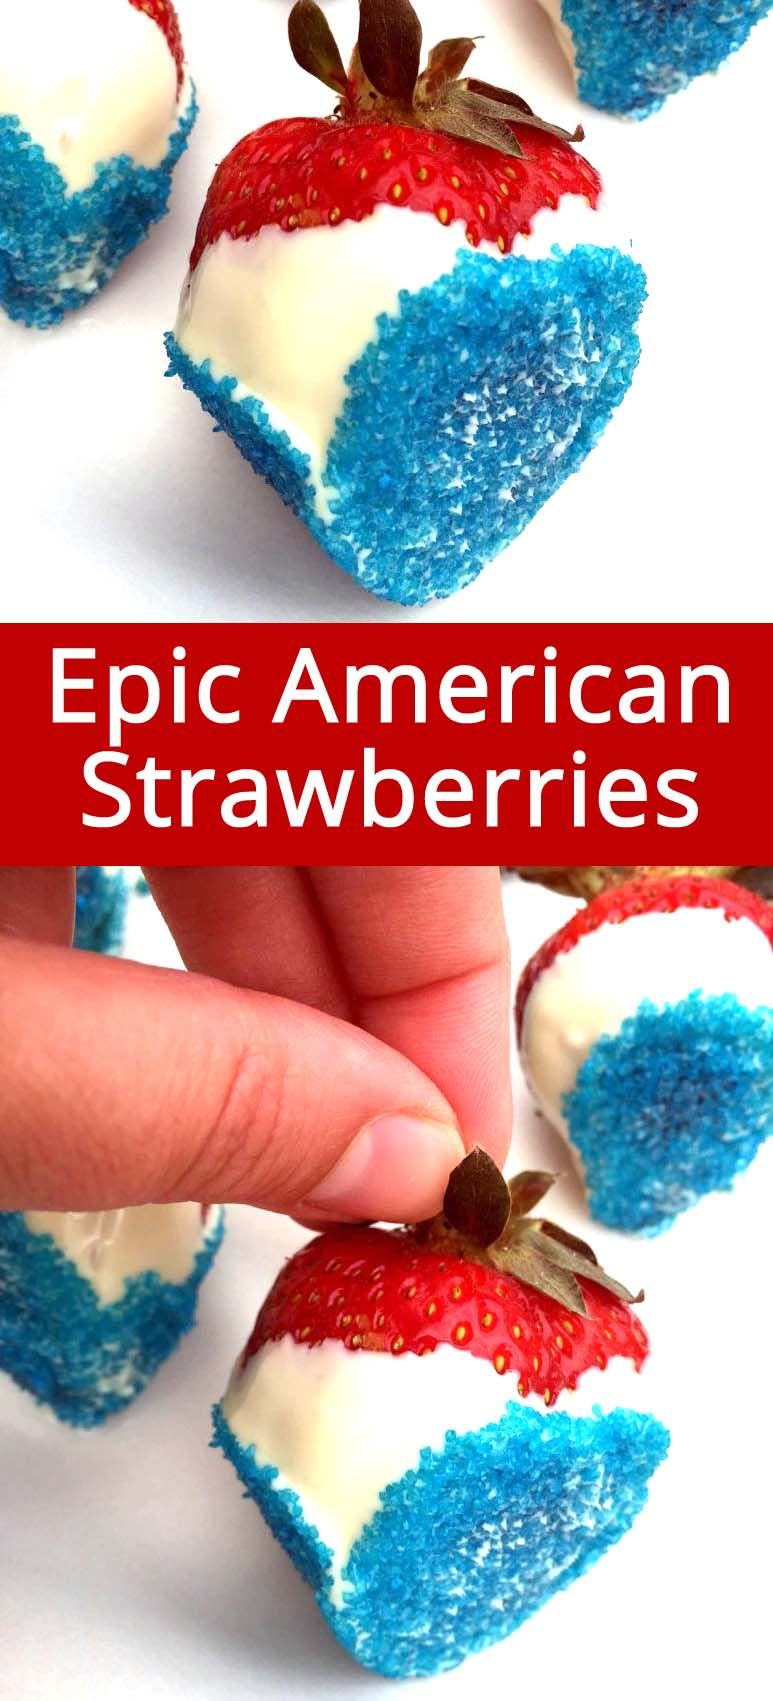 Genius idea!! I'm totally making these red, white and blue chocolate covered strawberries for 4th of July! LOVE THEM!